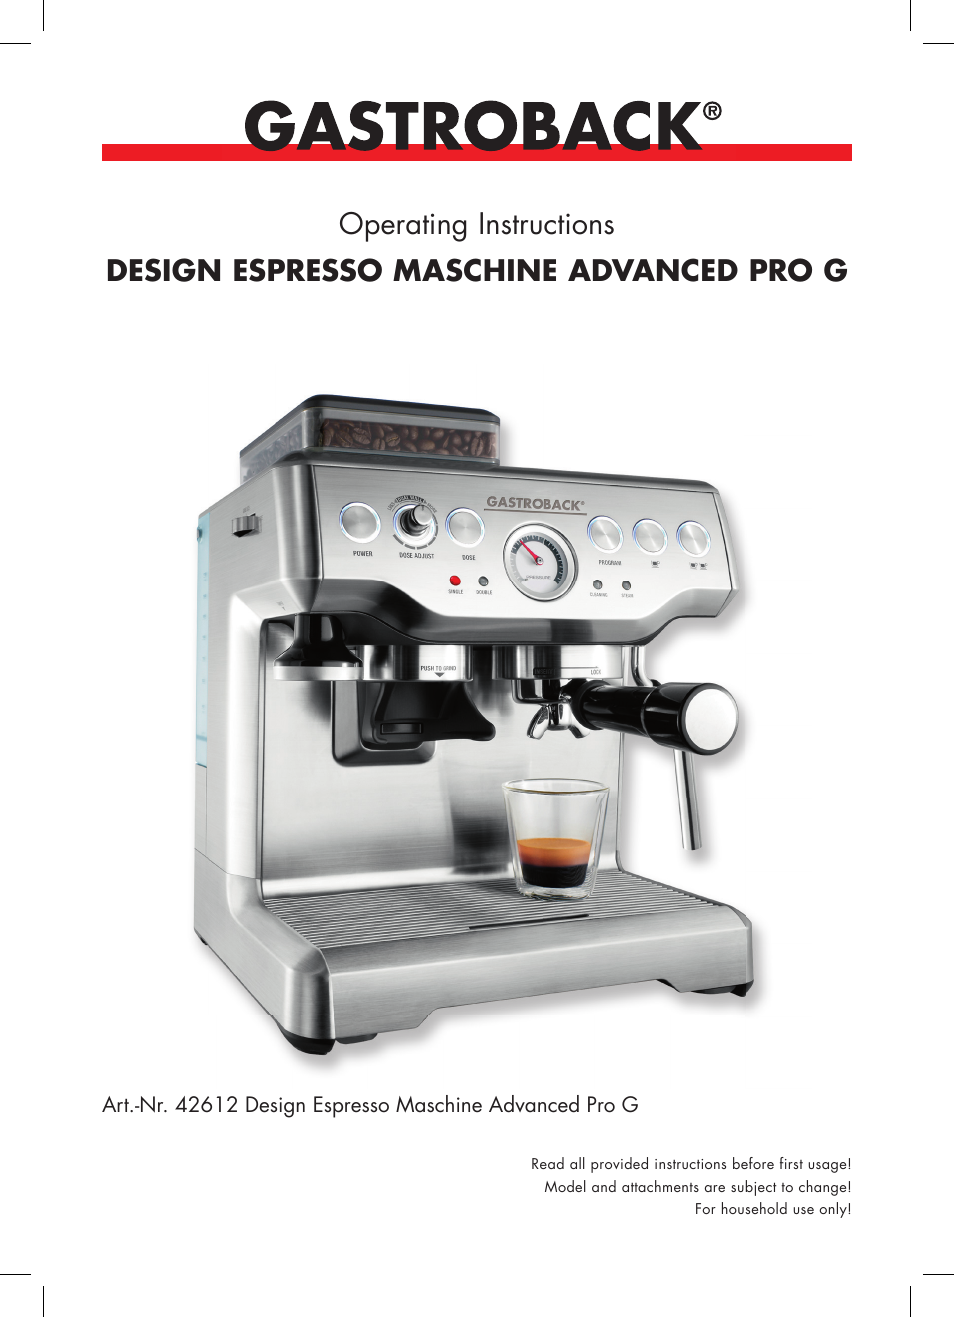 gastroback 42612 design espresso machine advanced pro g user manual 38 pages. Black Bedroom Furniture Sets. Home Design Ideas